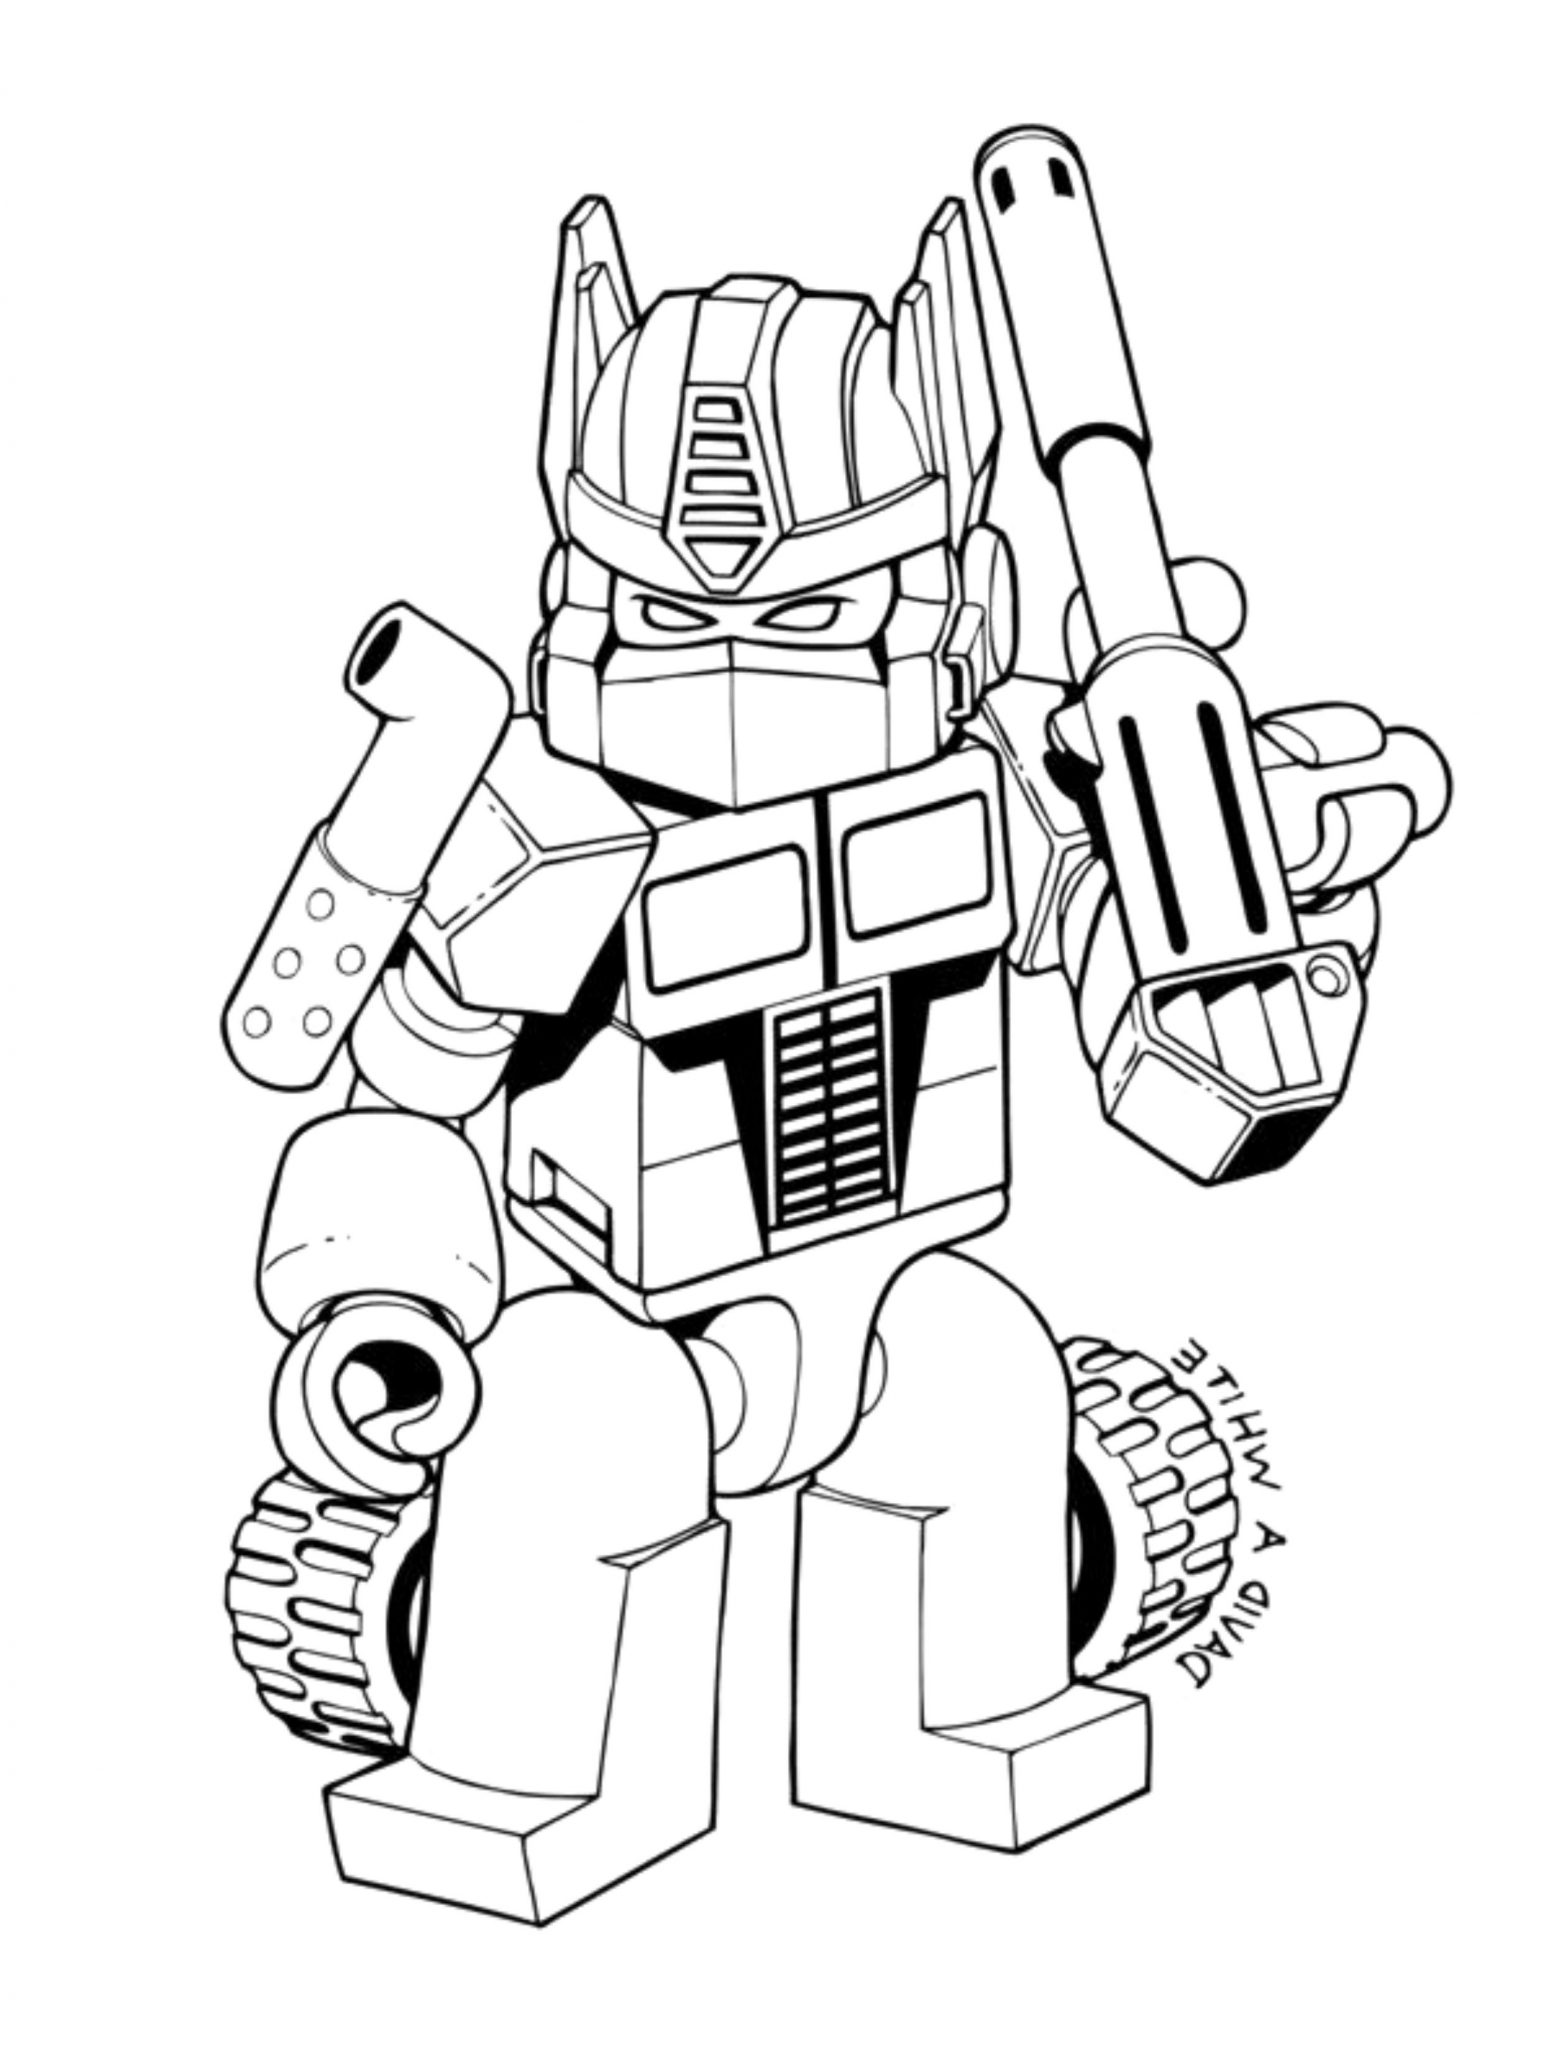 coloring transformers dinobot transformers coloring pages gtgt disney coloring pages coloring transformers